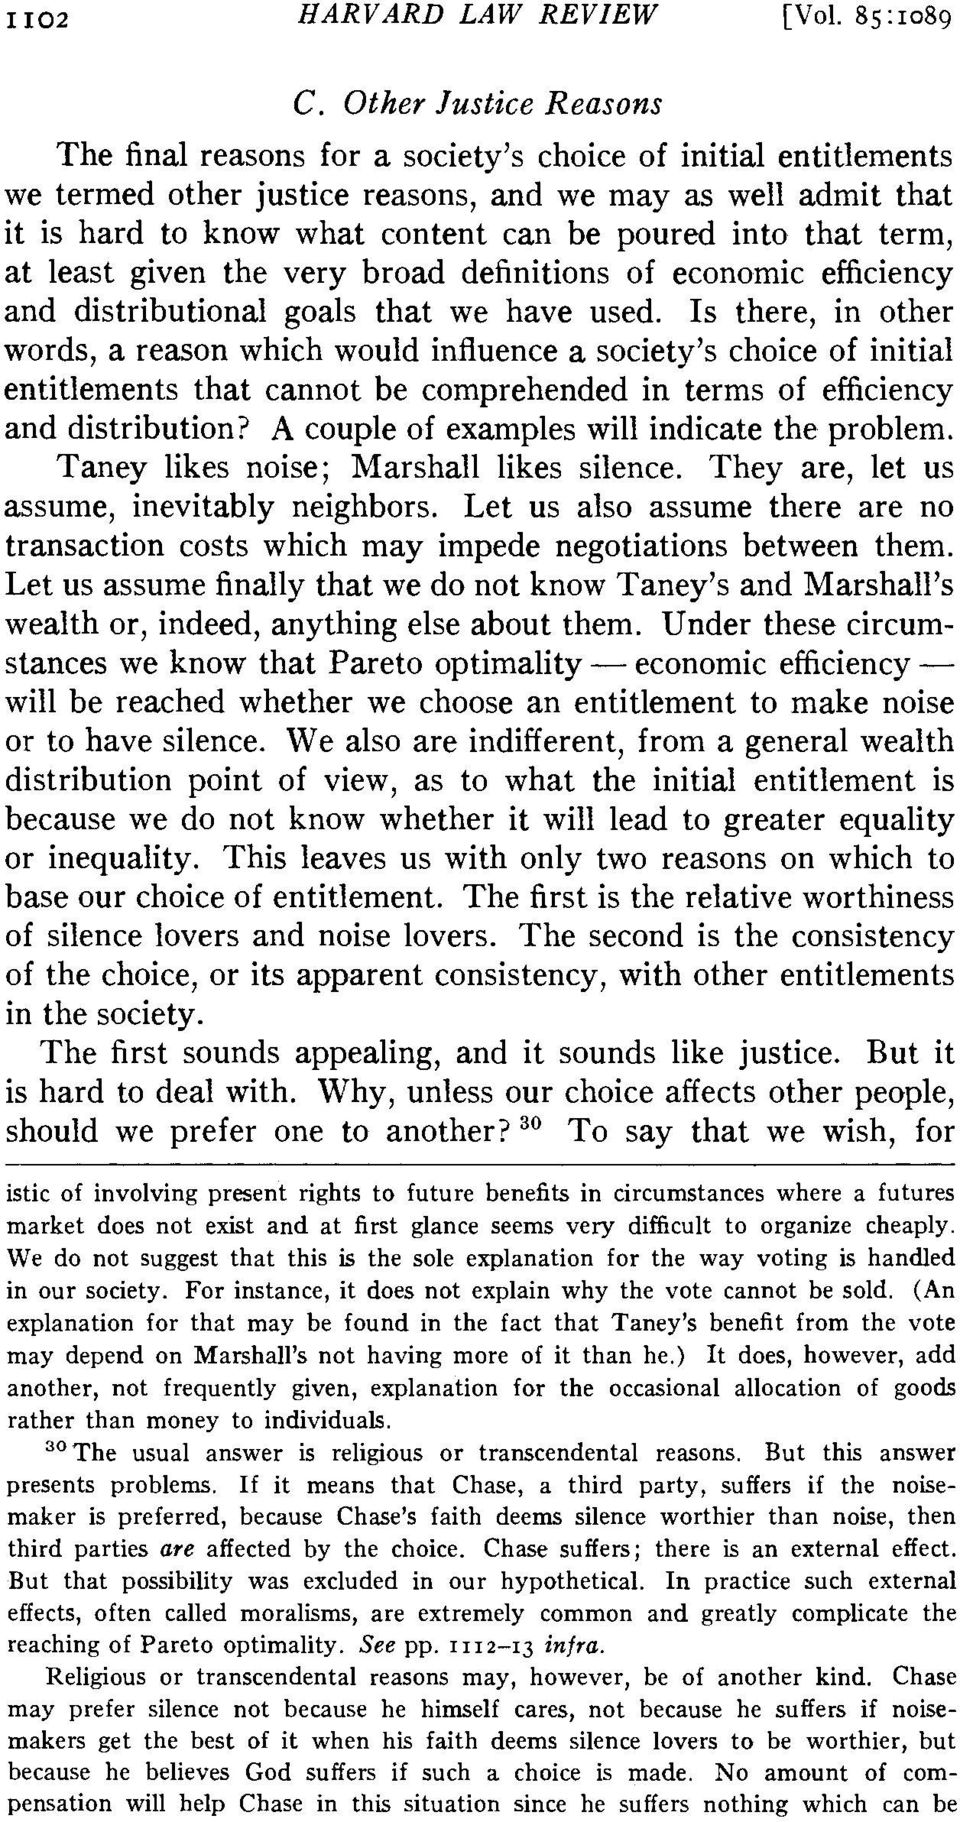 into that term, at least given the very broad definitions of economic efficiency and distributional goals that we have used.